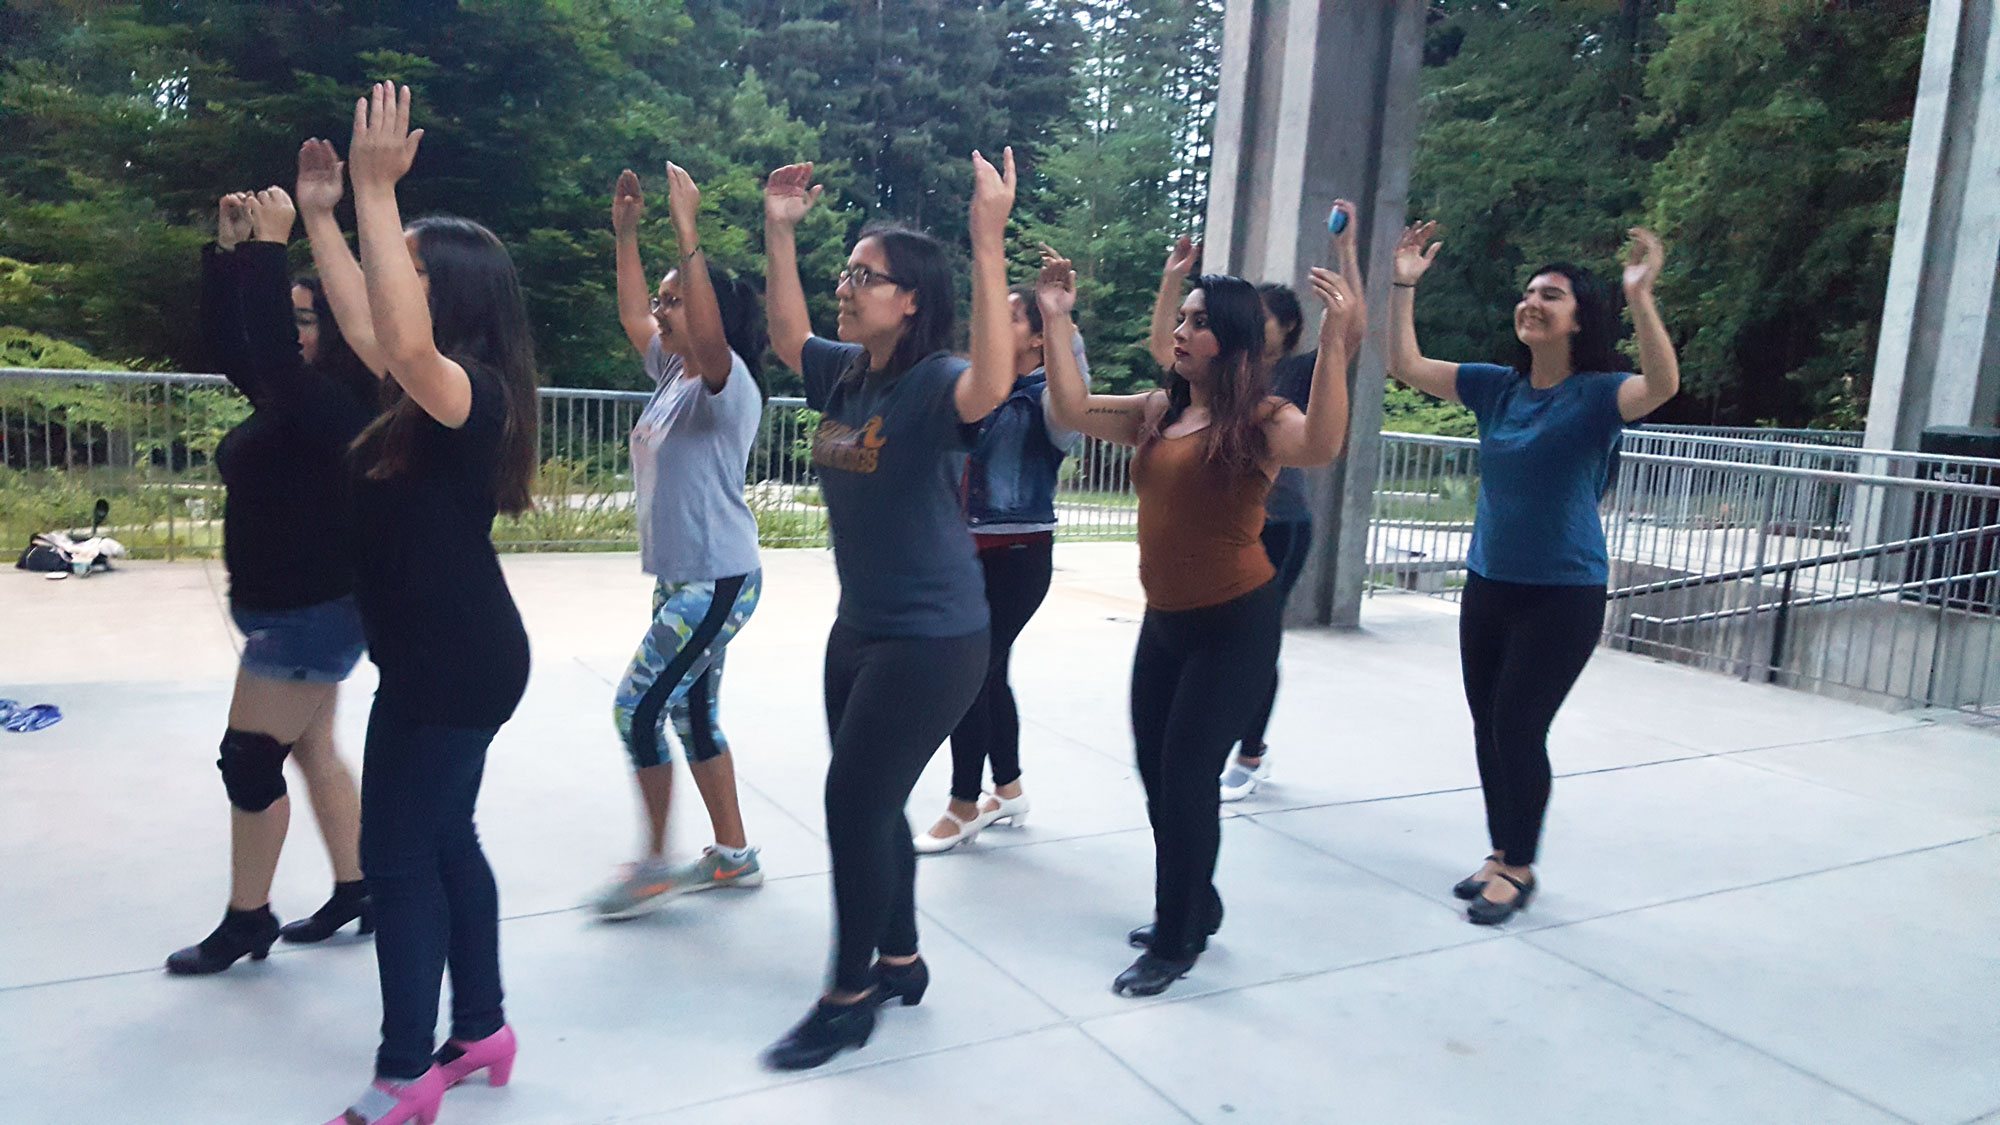 Using Campus as a Dance Studio